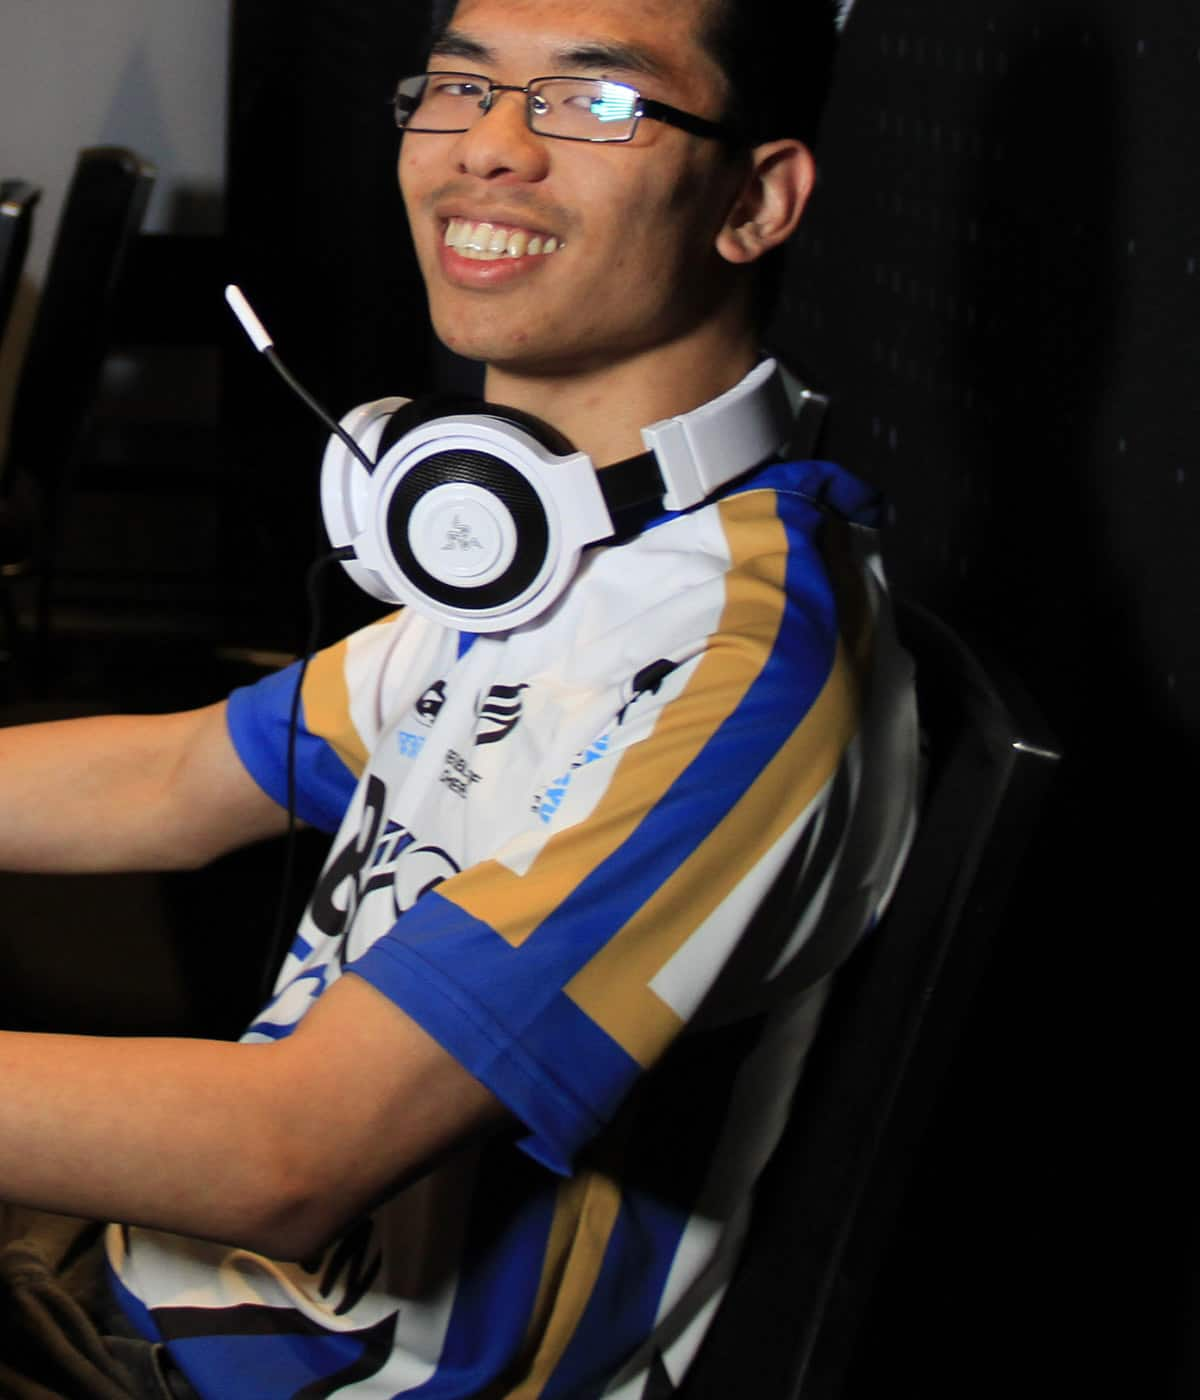 How esports became a way of life for this Canadian gamer